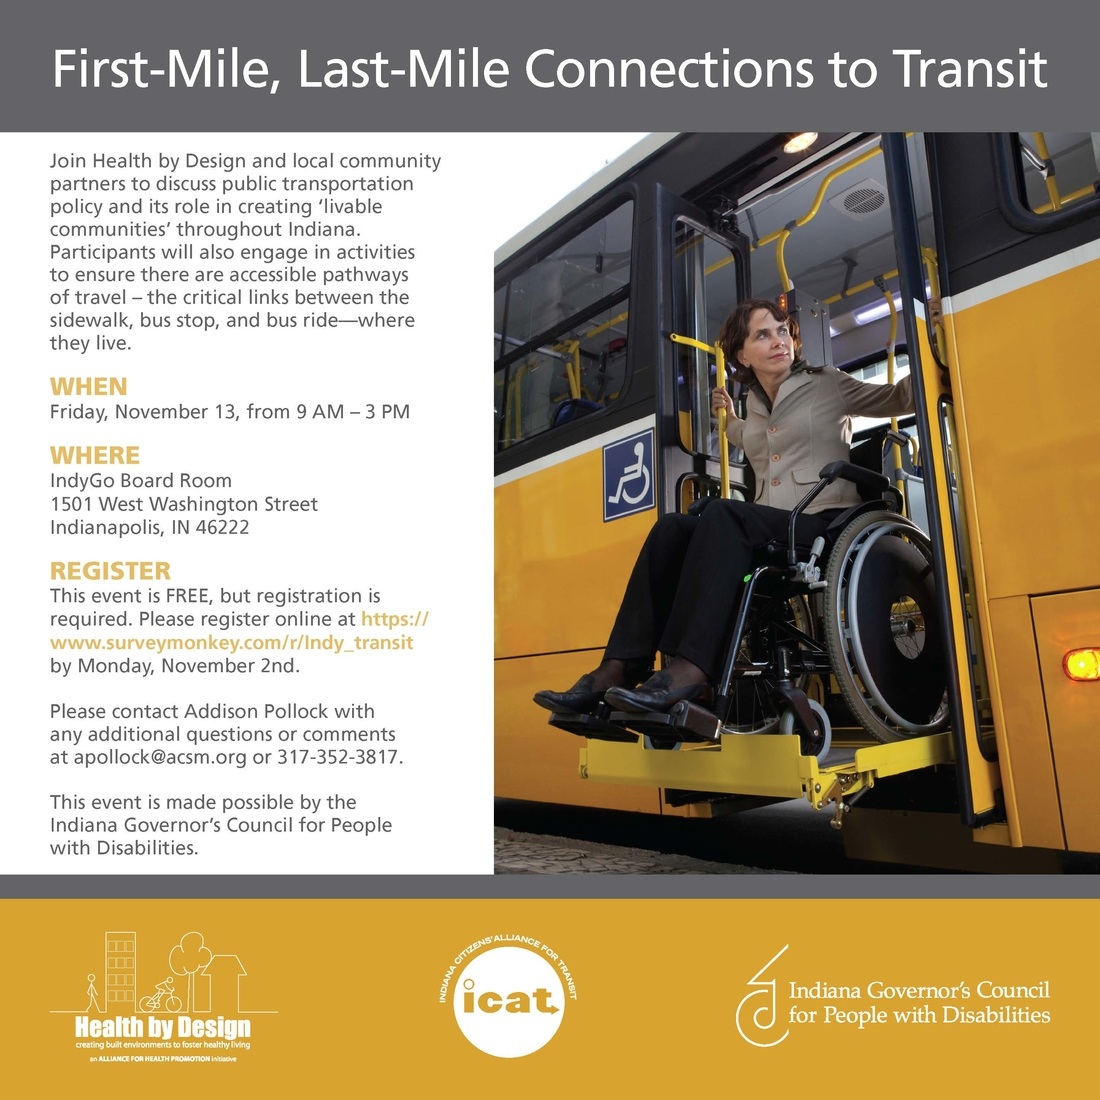 Flyer for First-Mile Connections